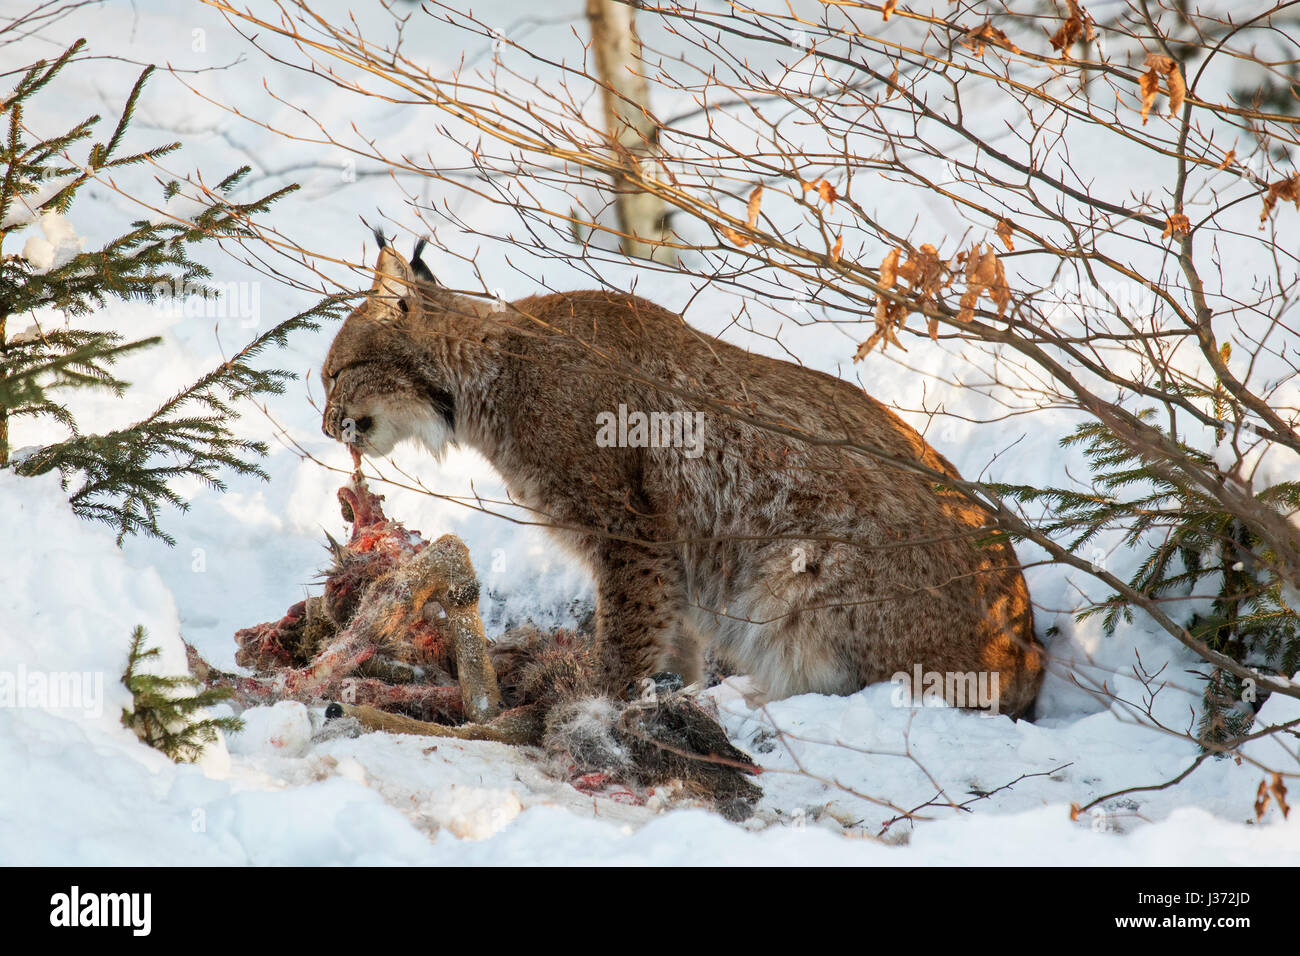 Eurasian lynx (Lynx lynx) feeding on killed roe deer in the snow in winter - Stock Image